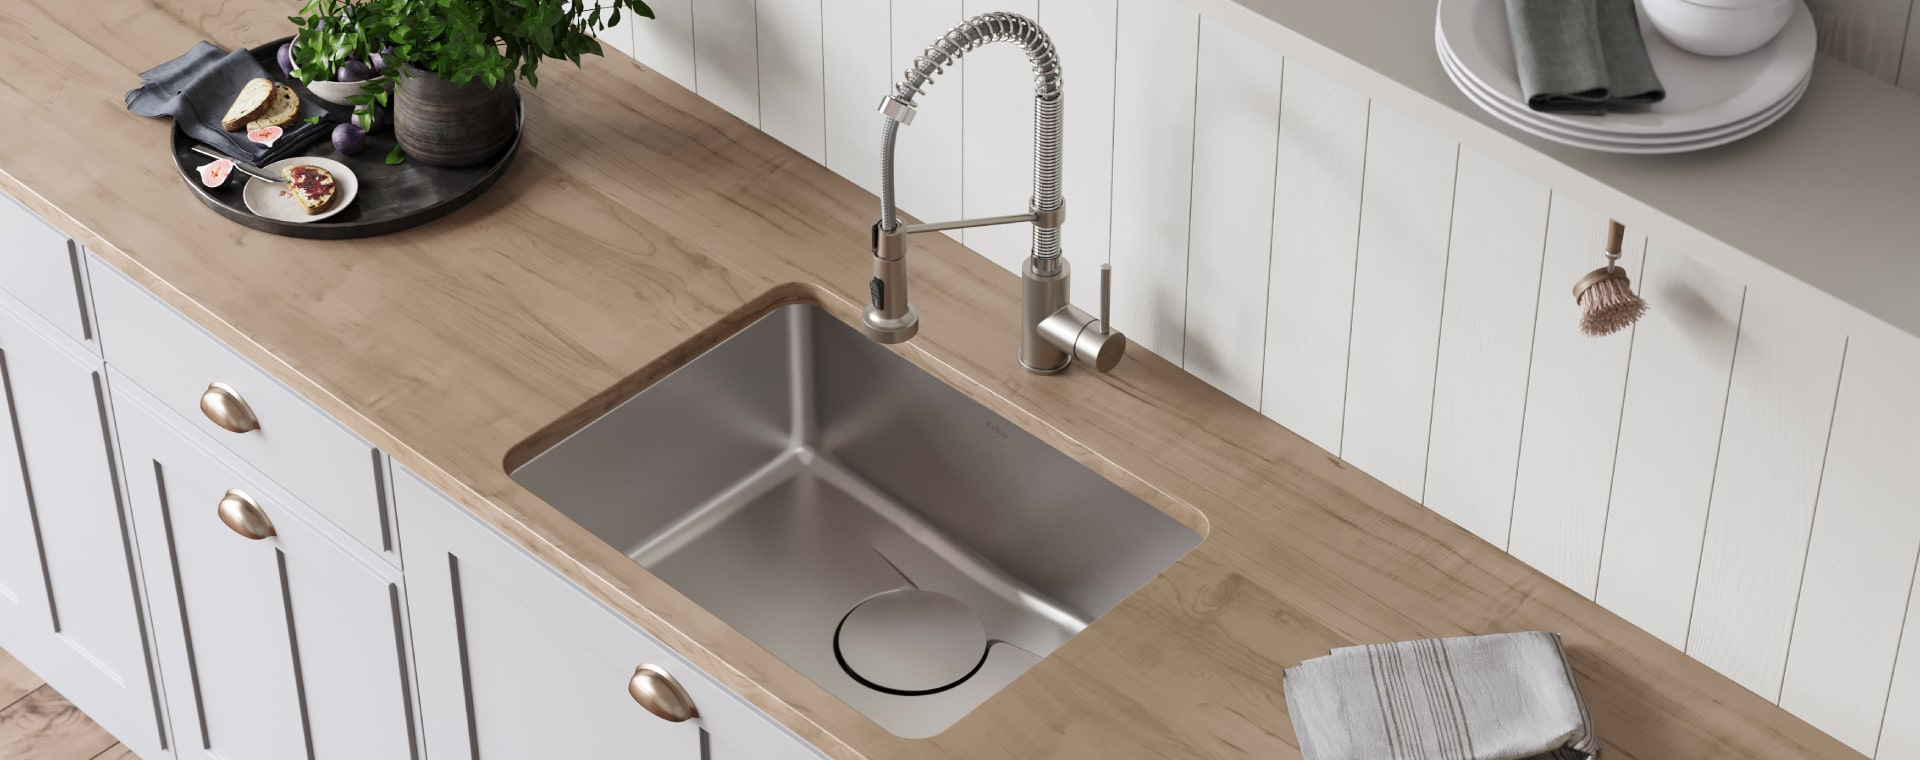 KRAUS sinks DEX collection with DrainAssure